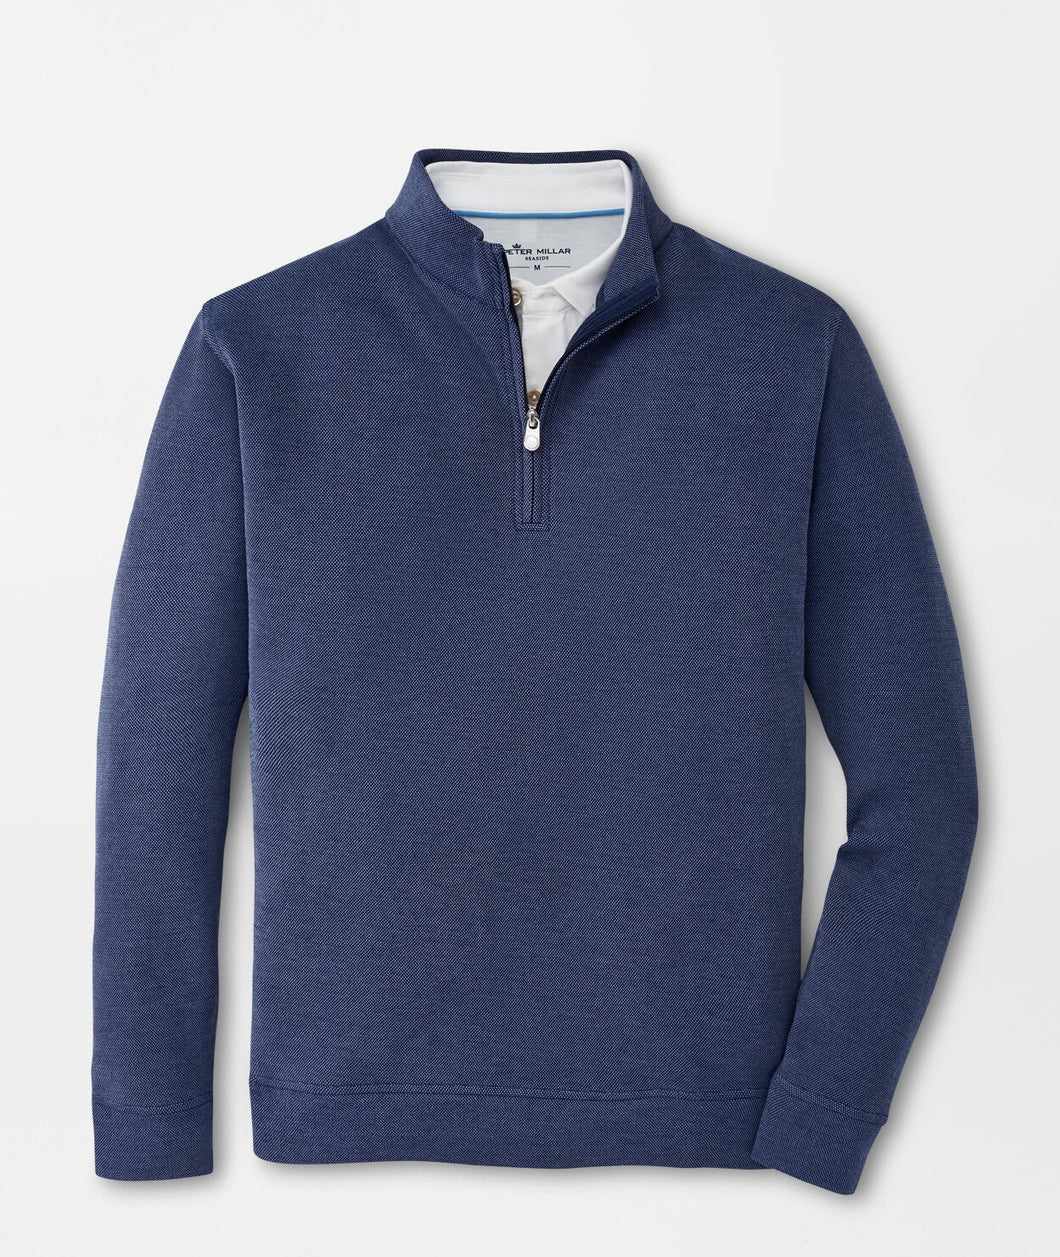 Peter Millar Crown Comfort Birdseye Quarter-Zip in Navy